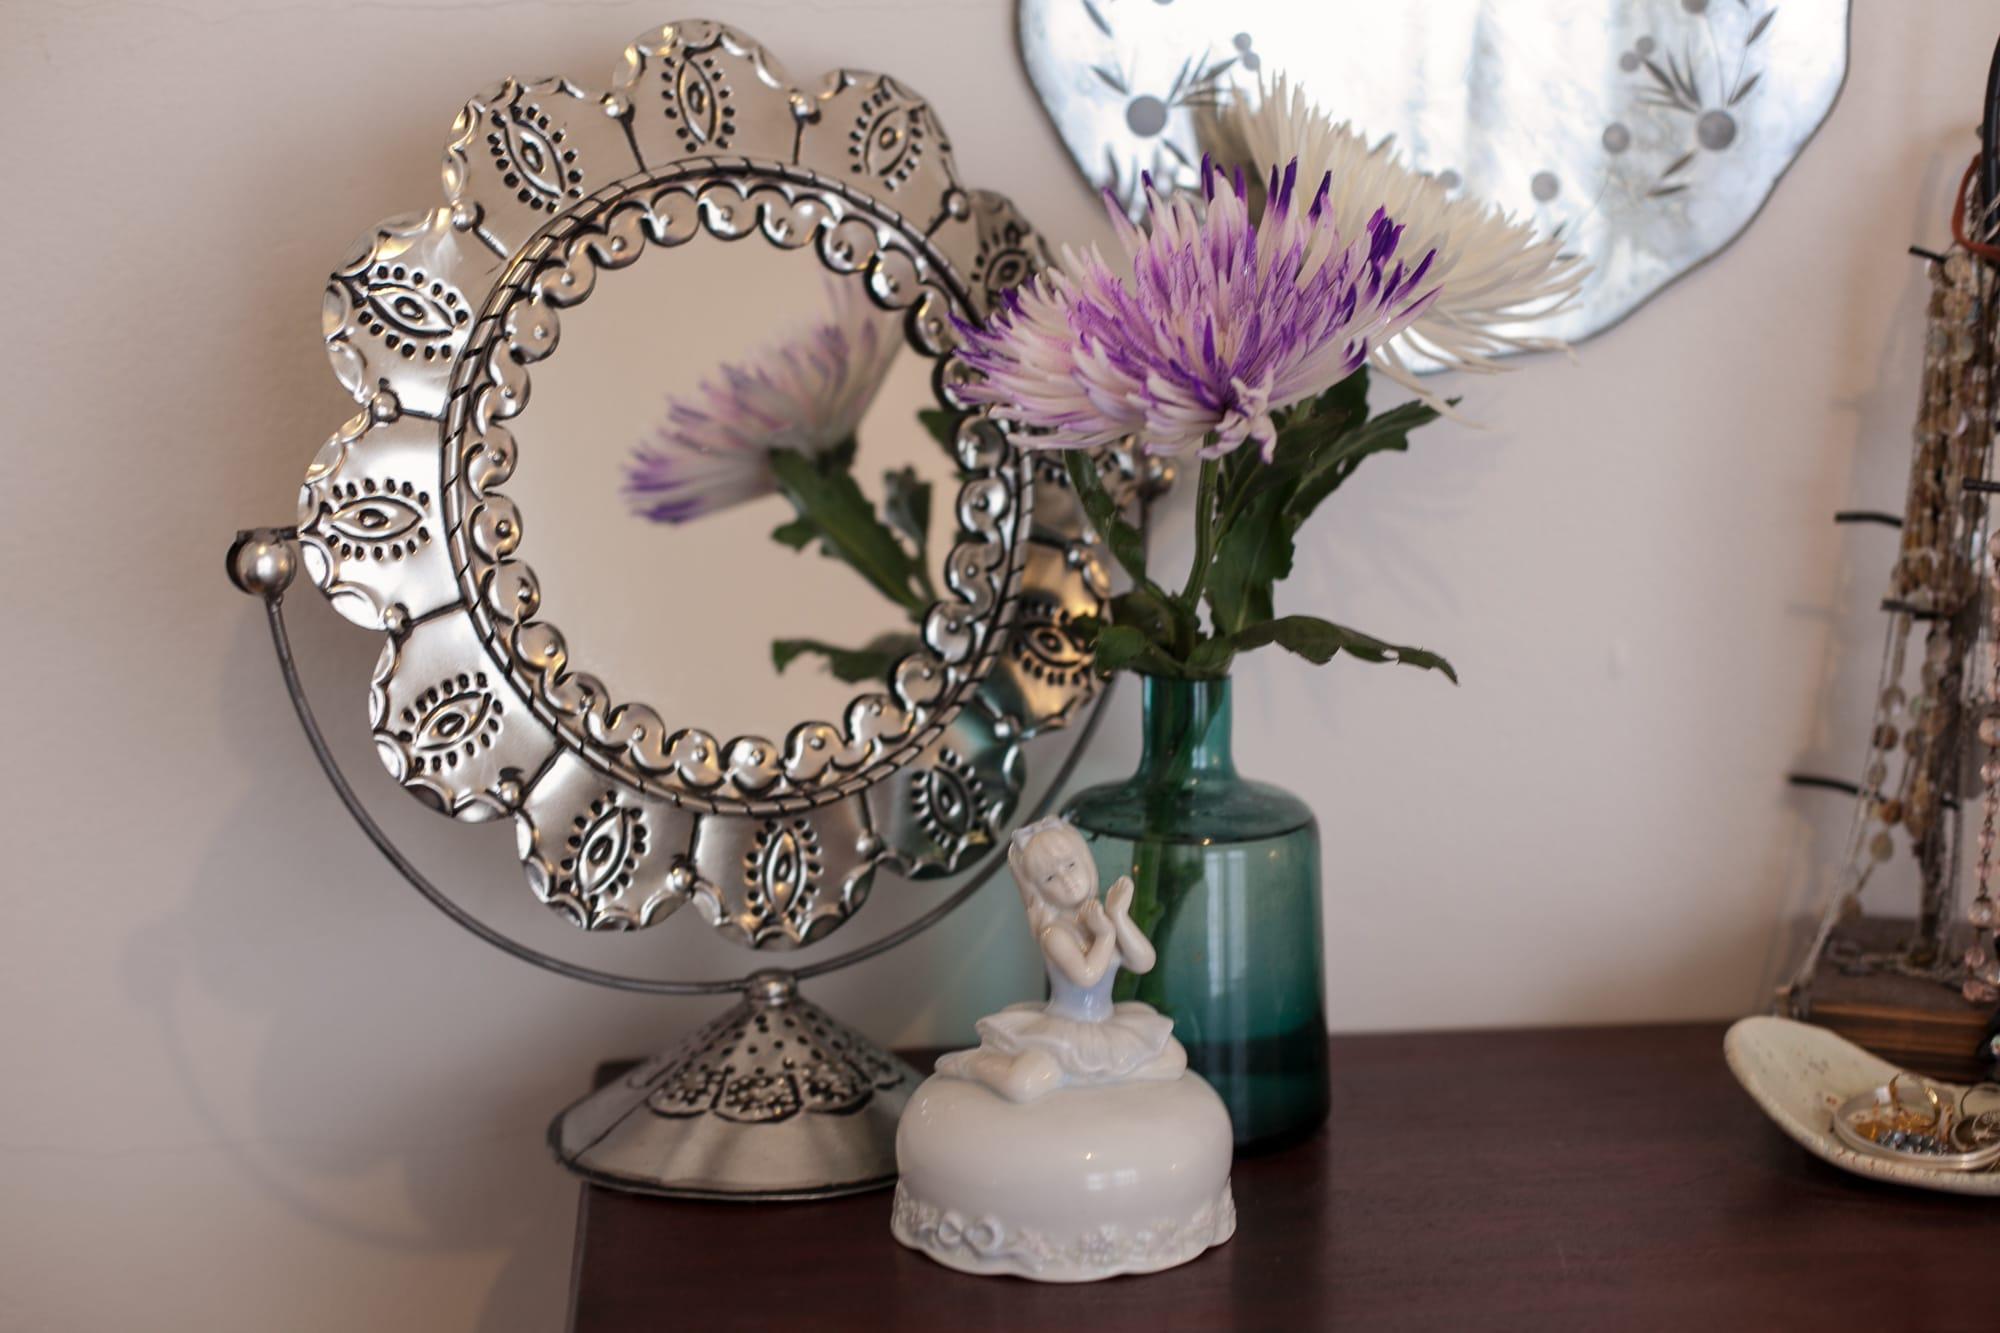 On my dresser: a mirror, a vase, and a ballerina music box.